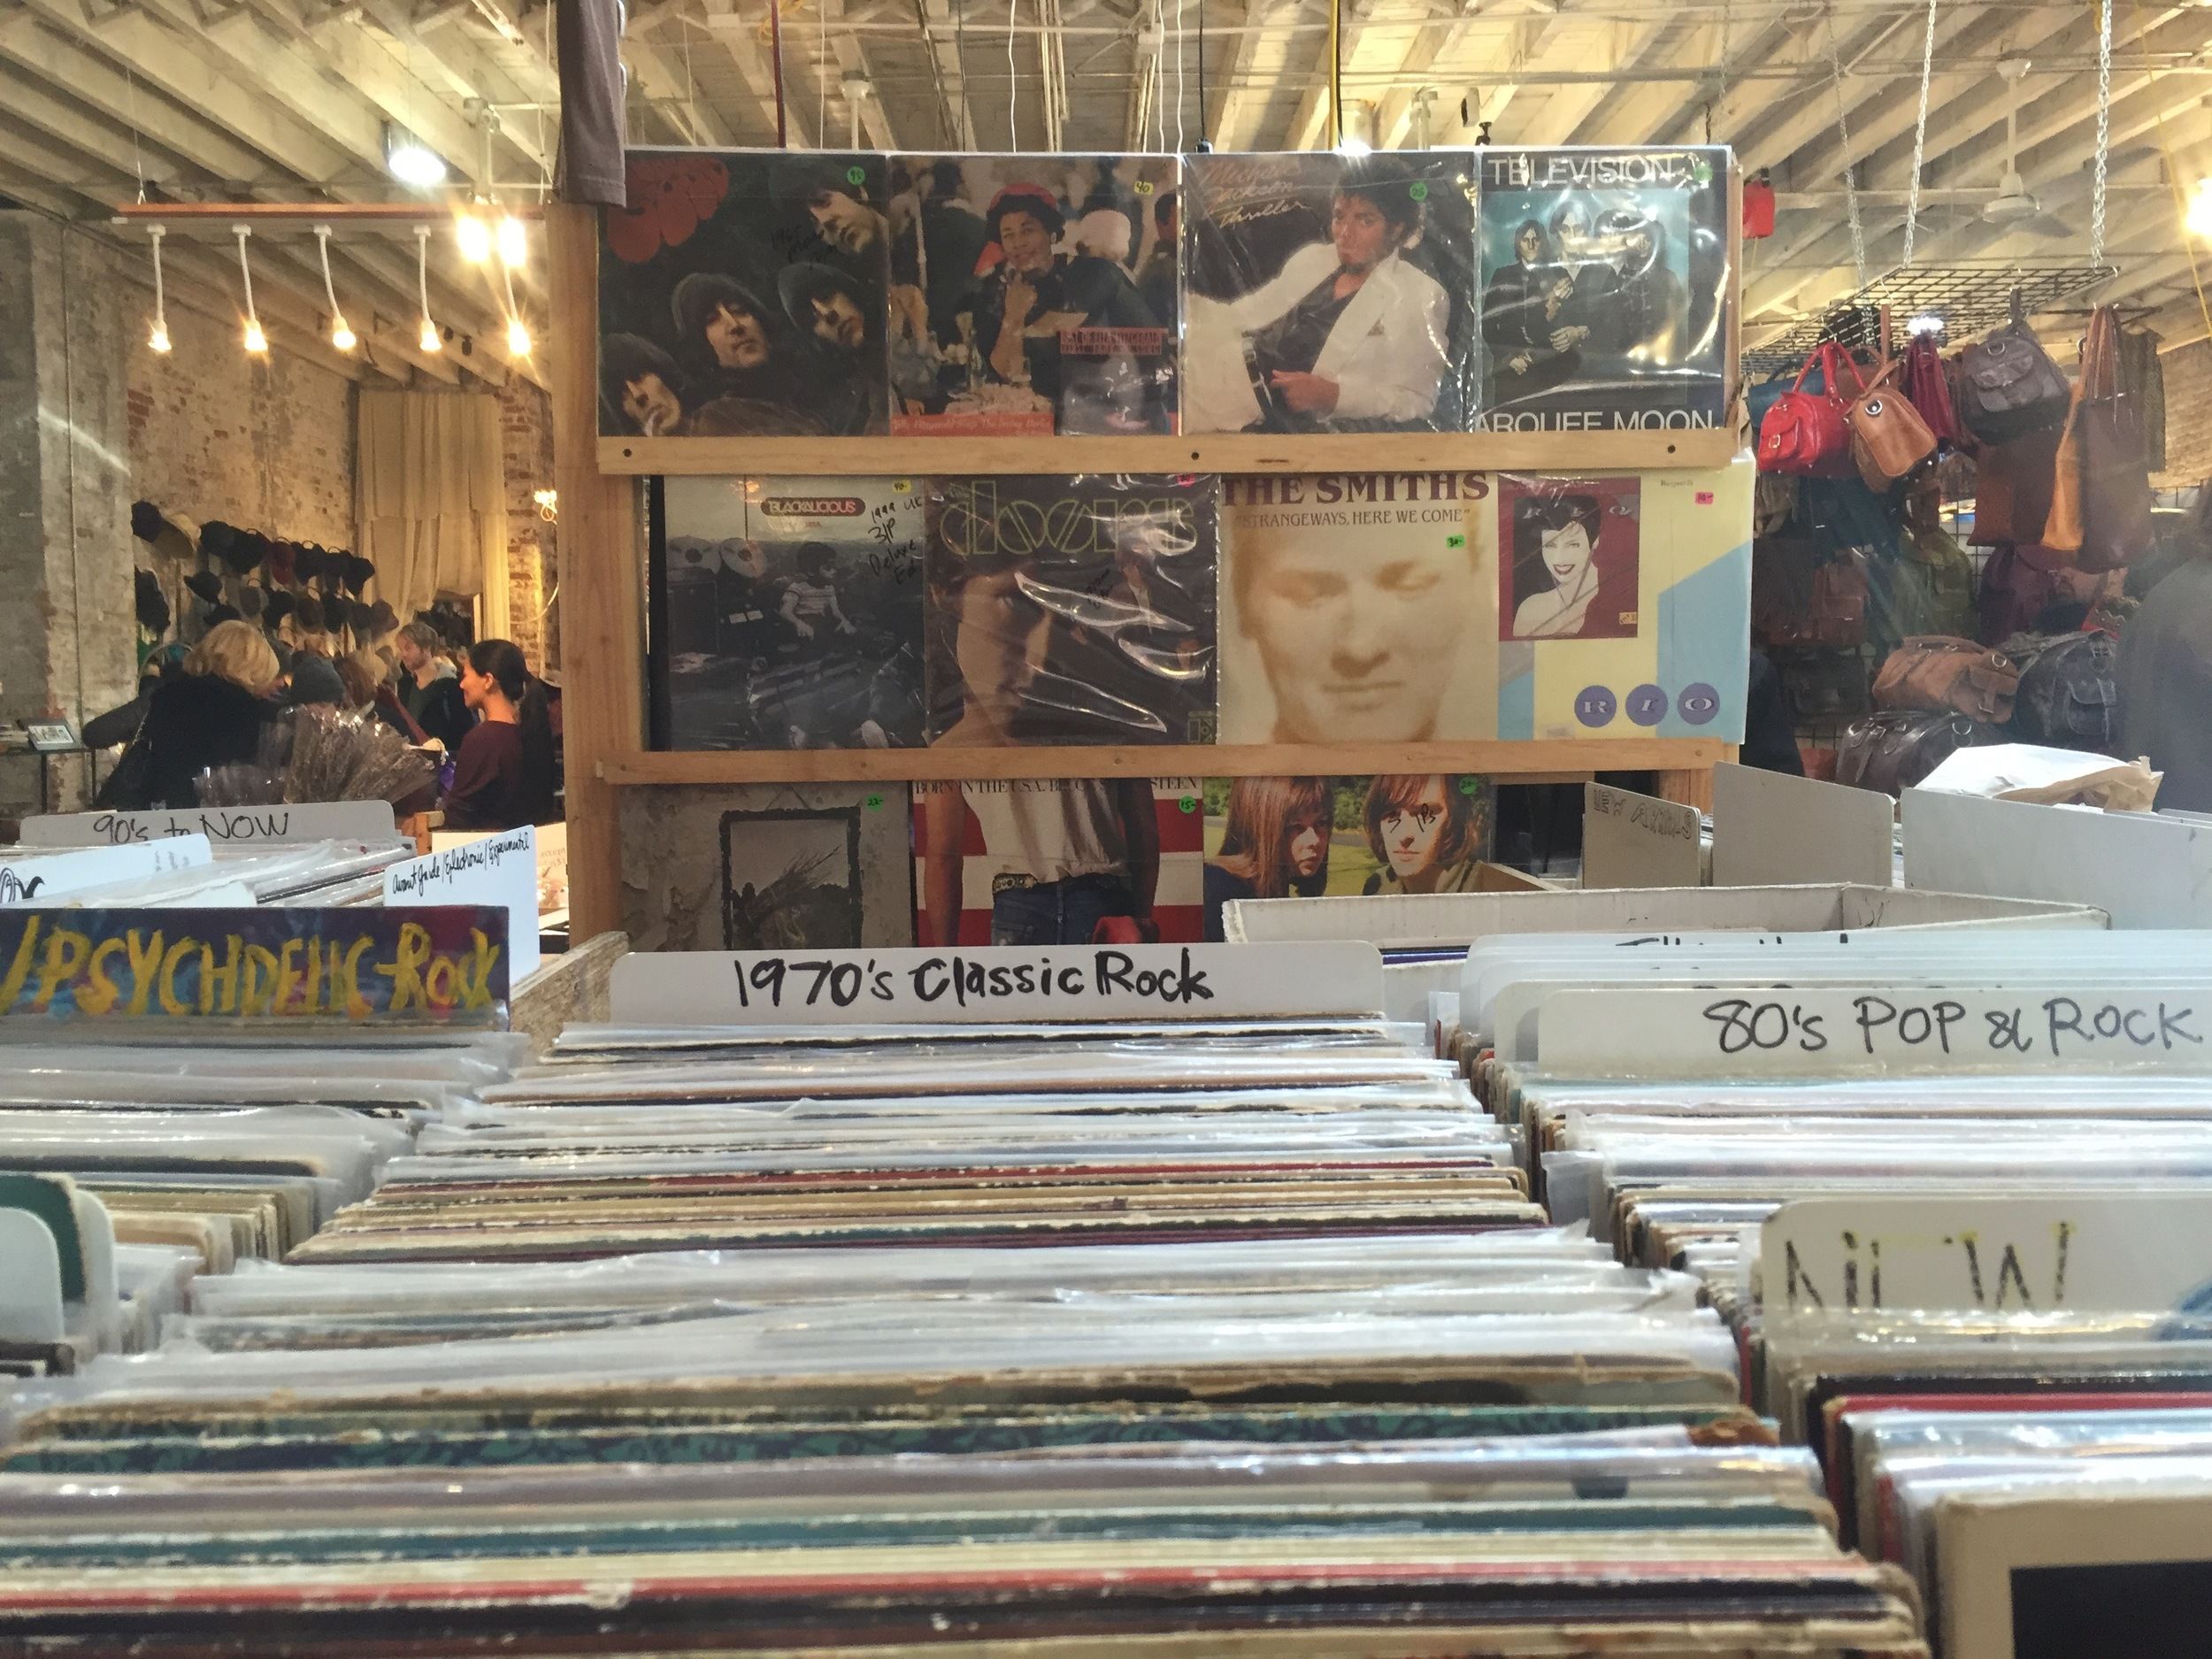 Vintage records collection at Artists & Fleas market in Williamsburg, Brooklyn